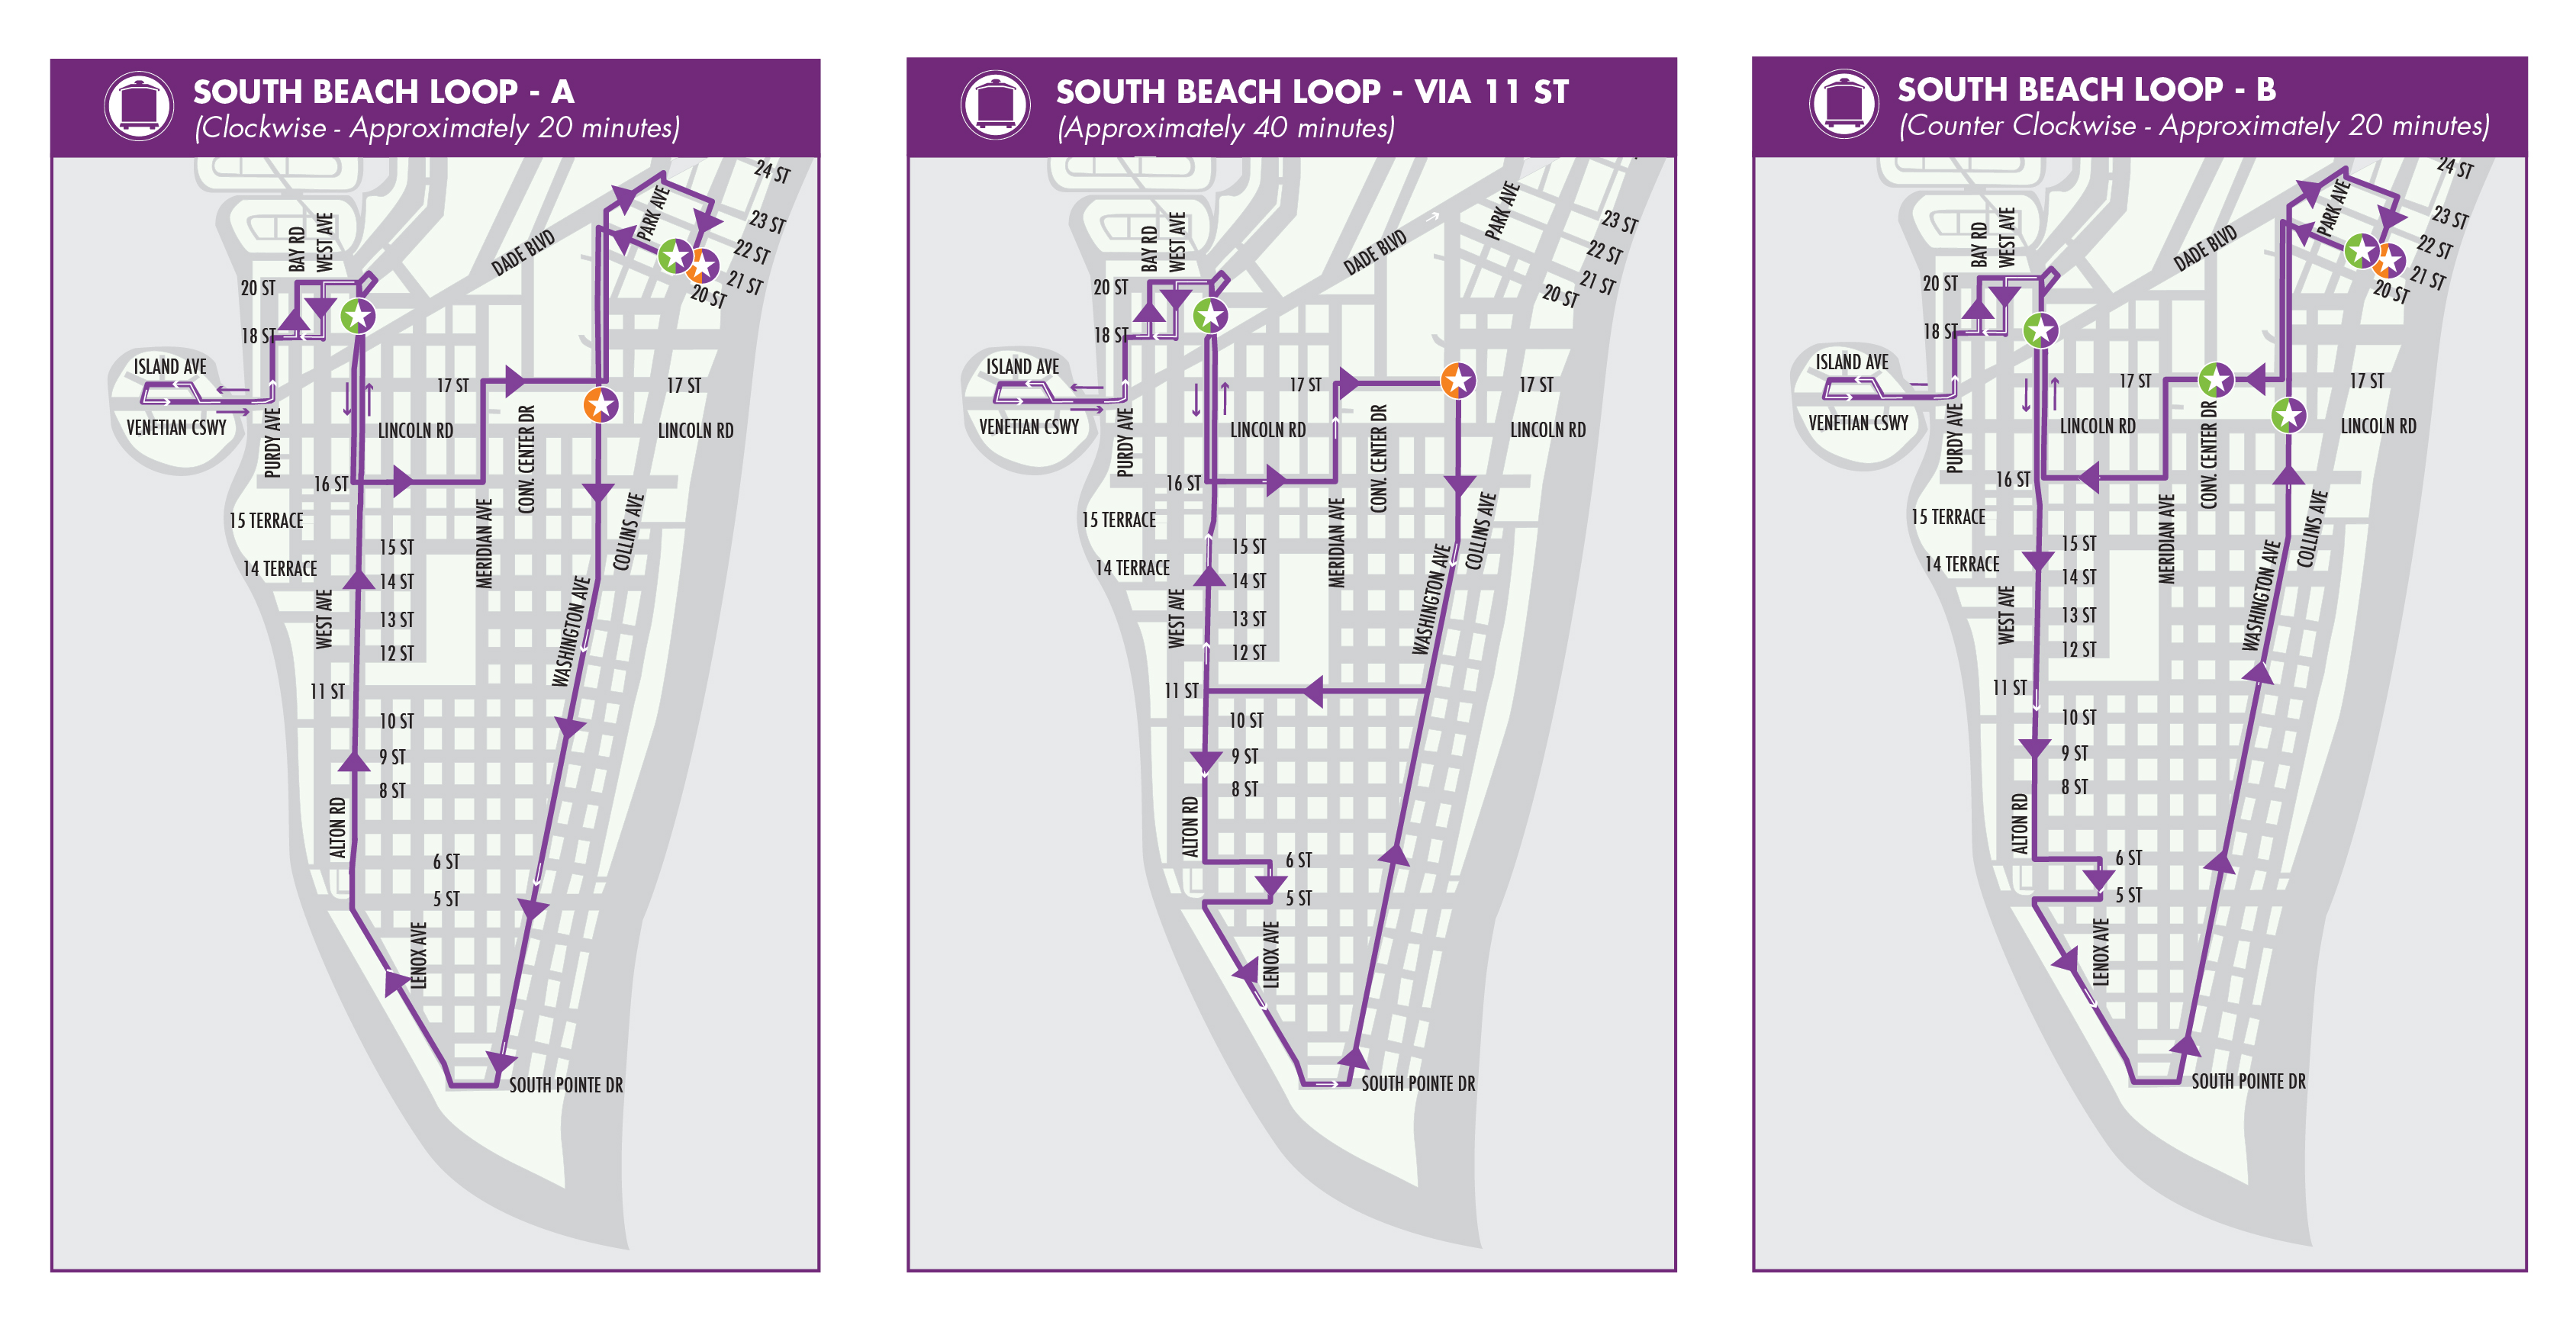 South Beach Service Map